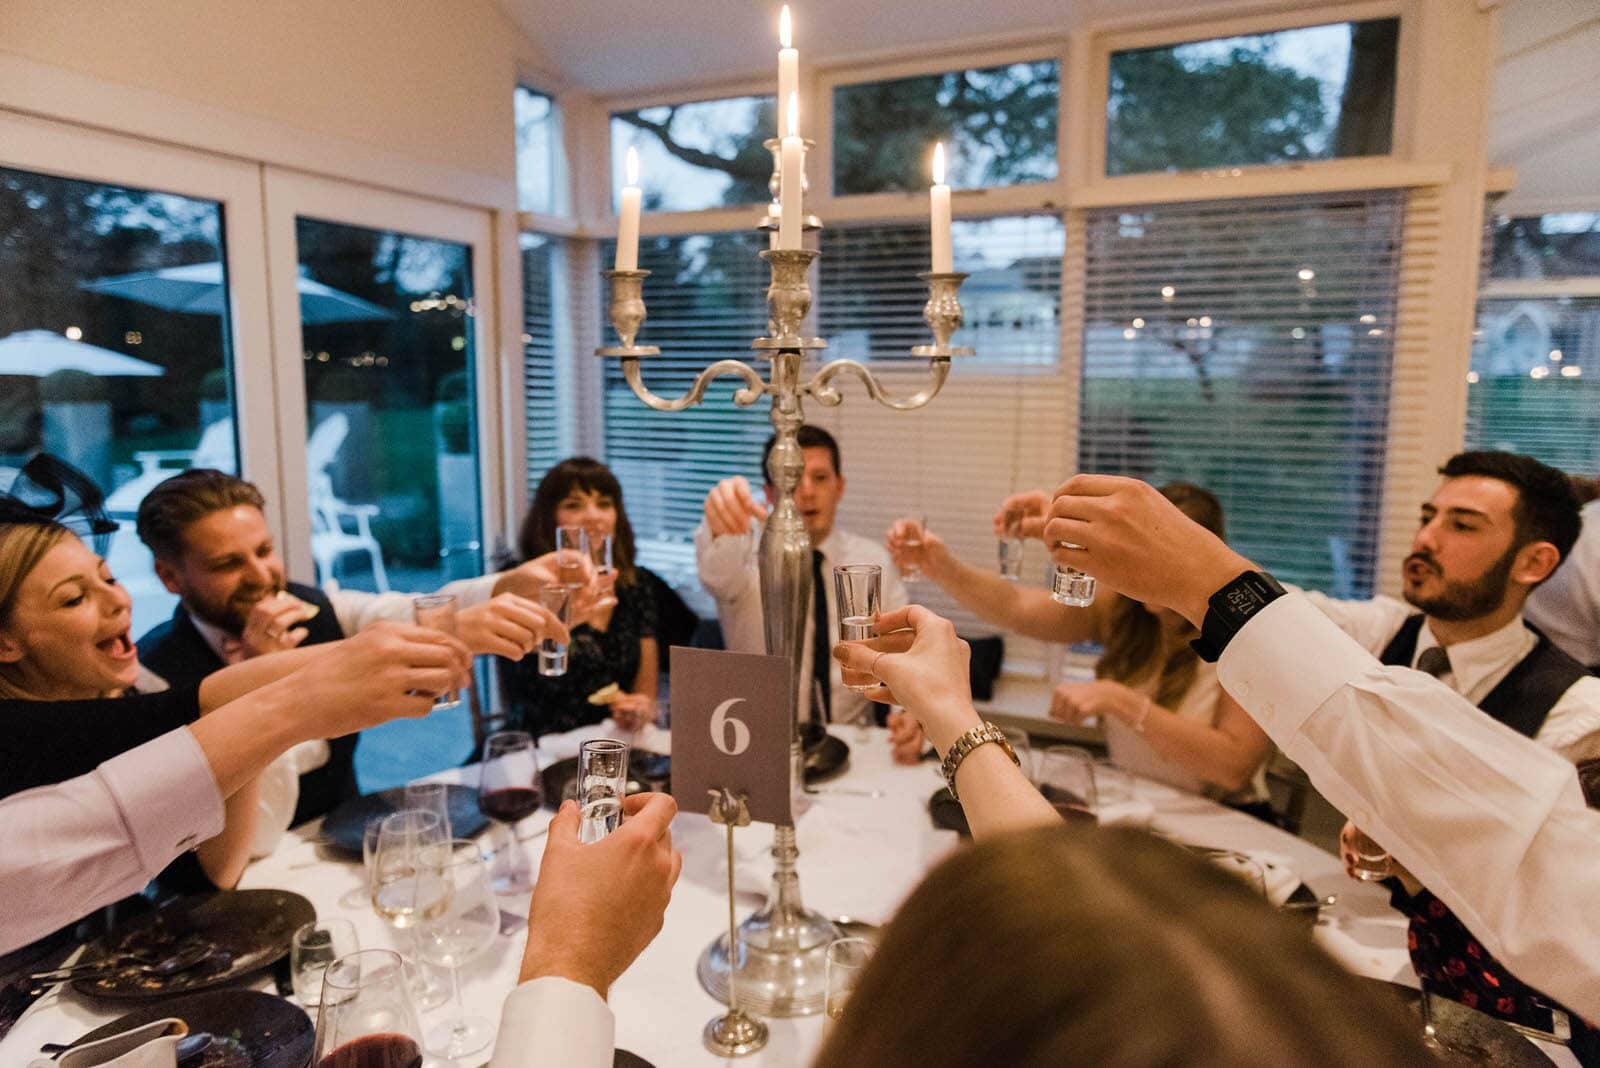 Wedding guests toasting with glasses during the speeches at The Old Vicarage Boutique